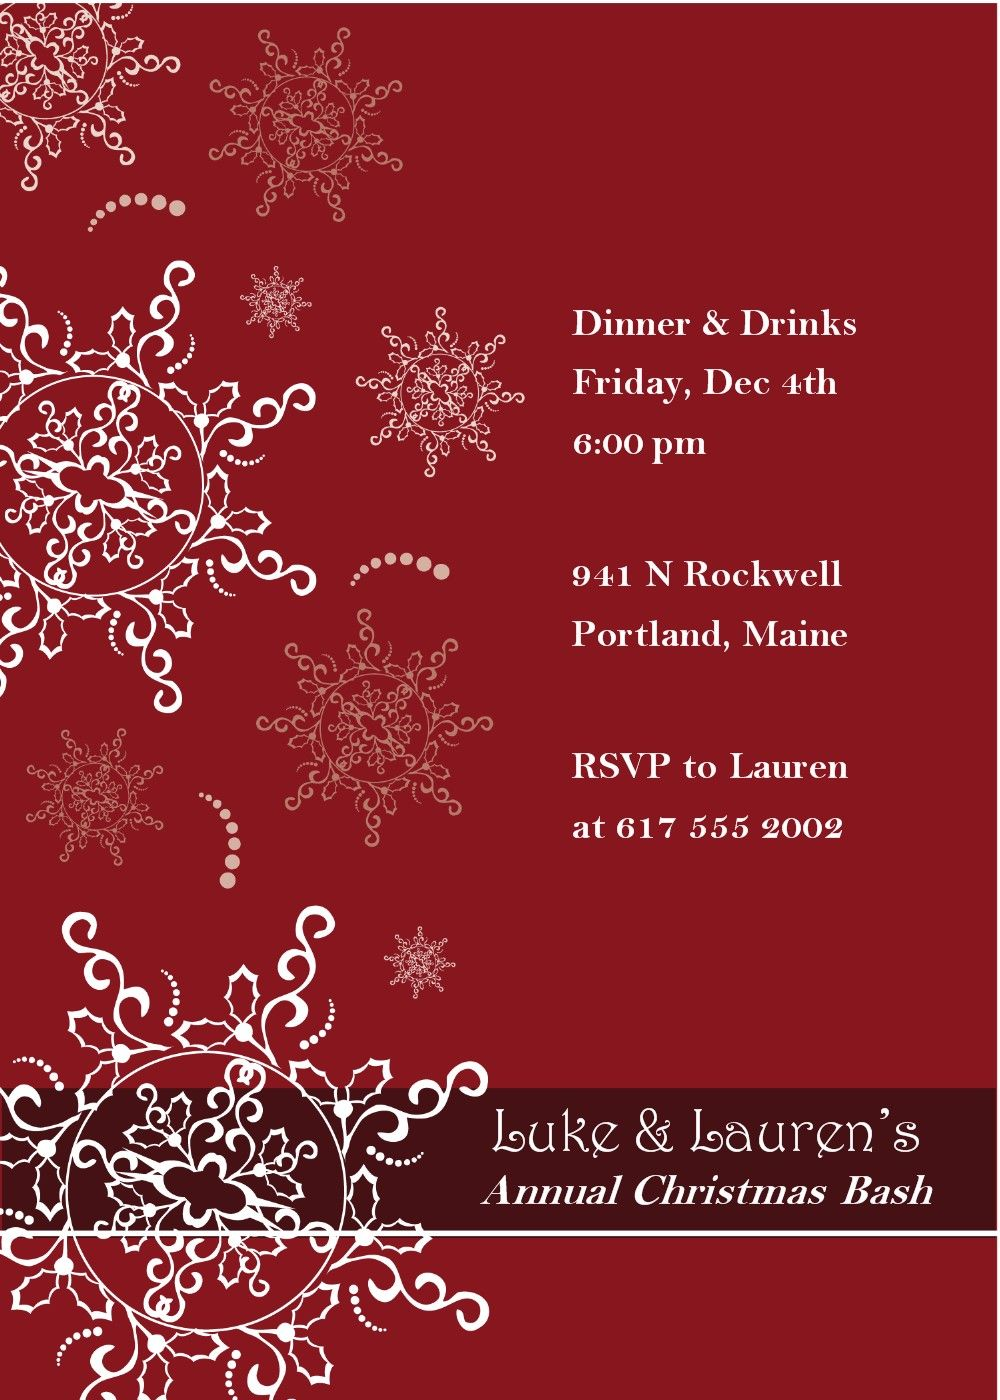 christmas party printable invitation templates invitation an invitation to depict the holiday spirit and invite the employees for a fun filled evening